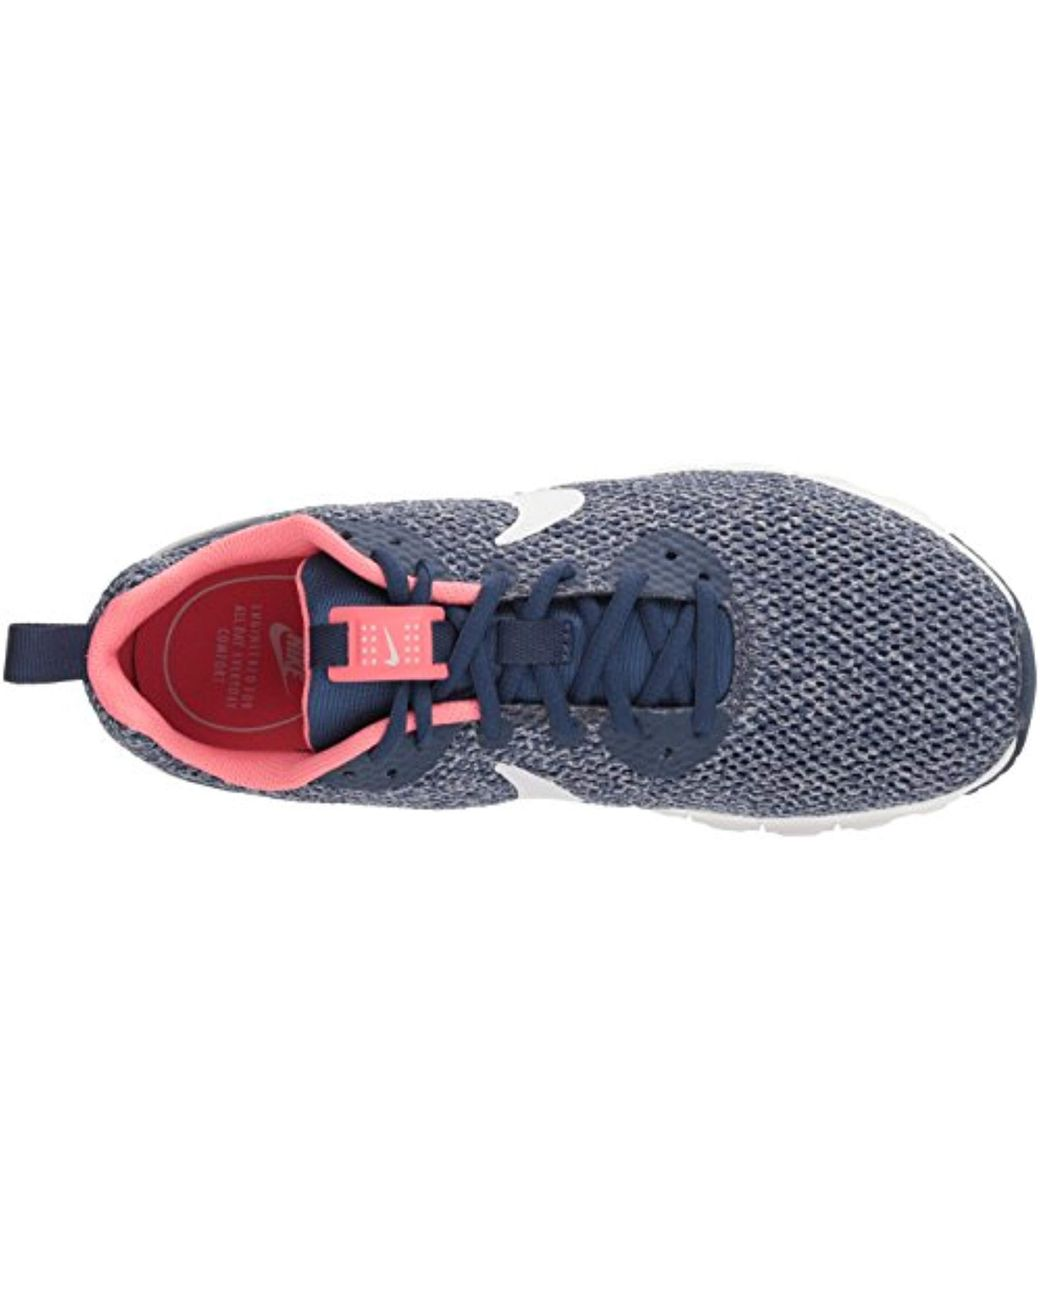 super popular 1b91f 57503 Lyst - Nike Air Max Motion Low Cross Trainer in Blue - Save 29%